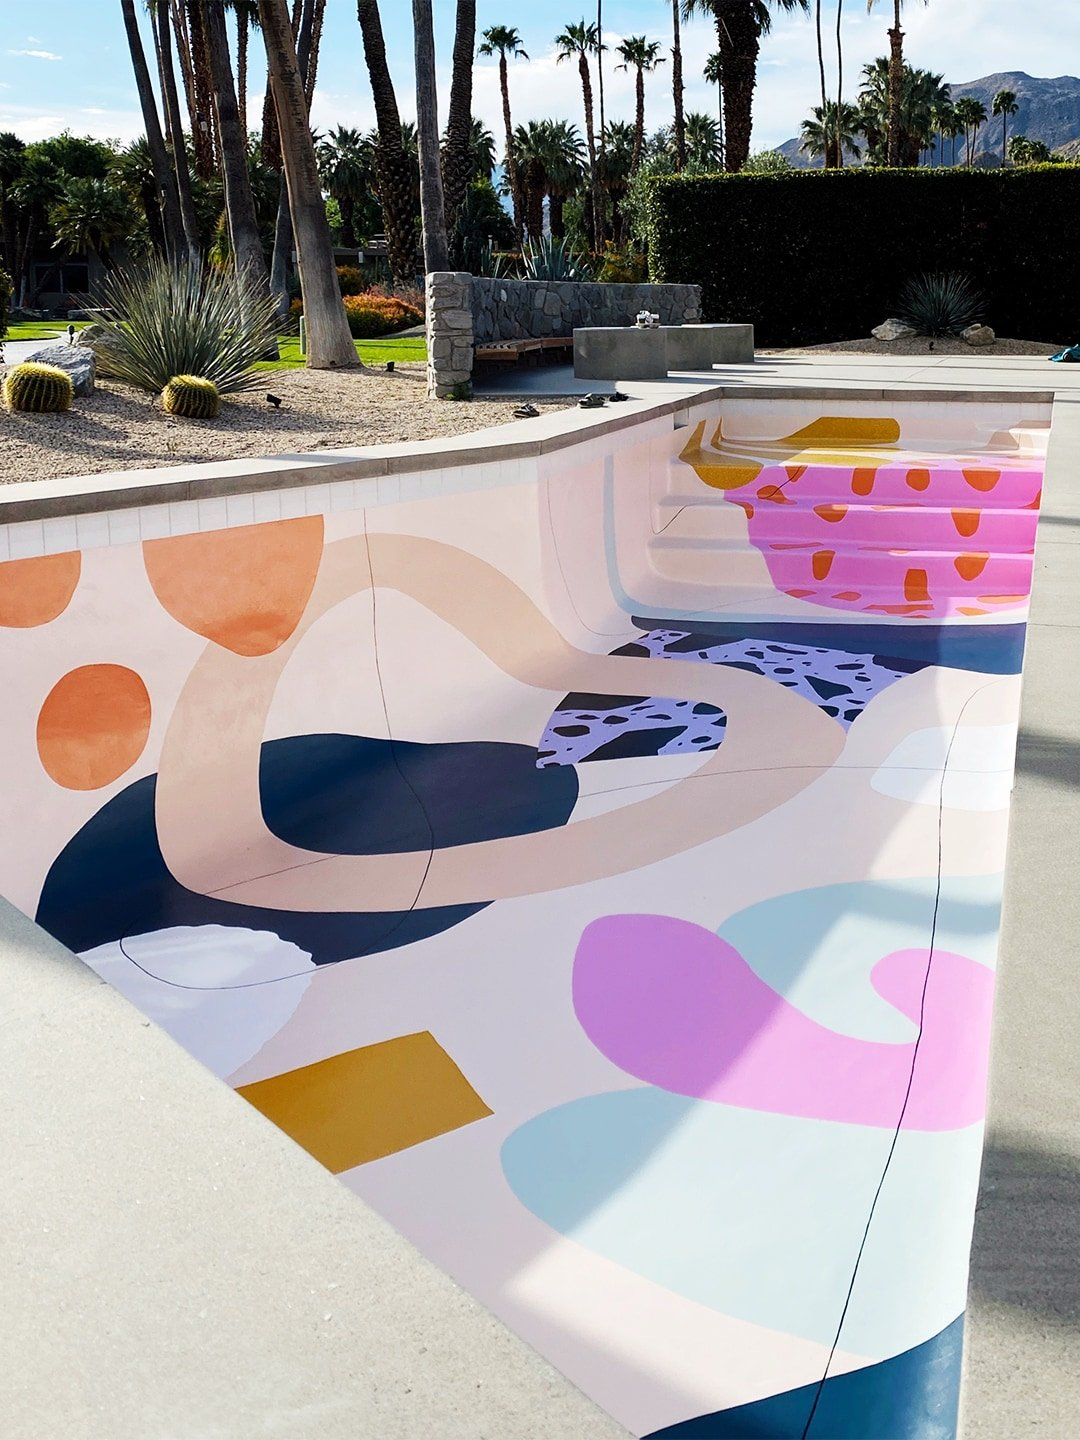 This Painted Pool Will Perk Up Your Day